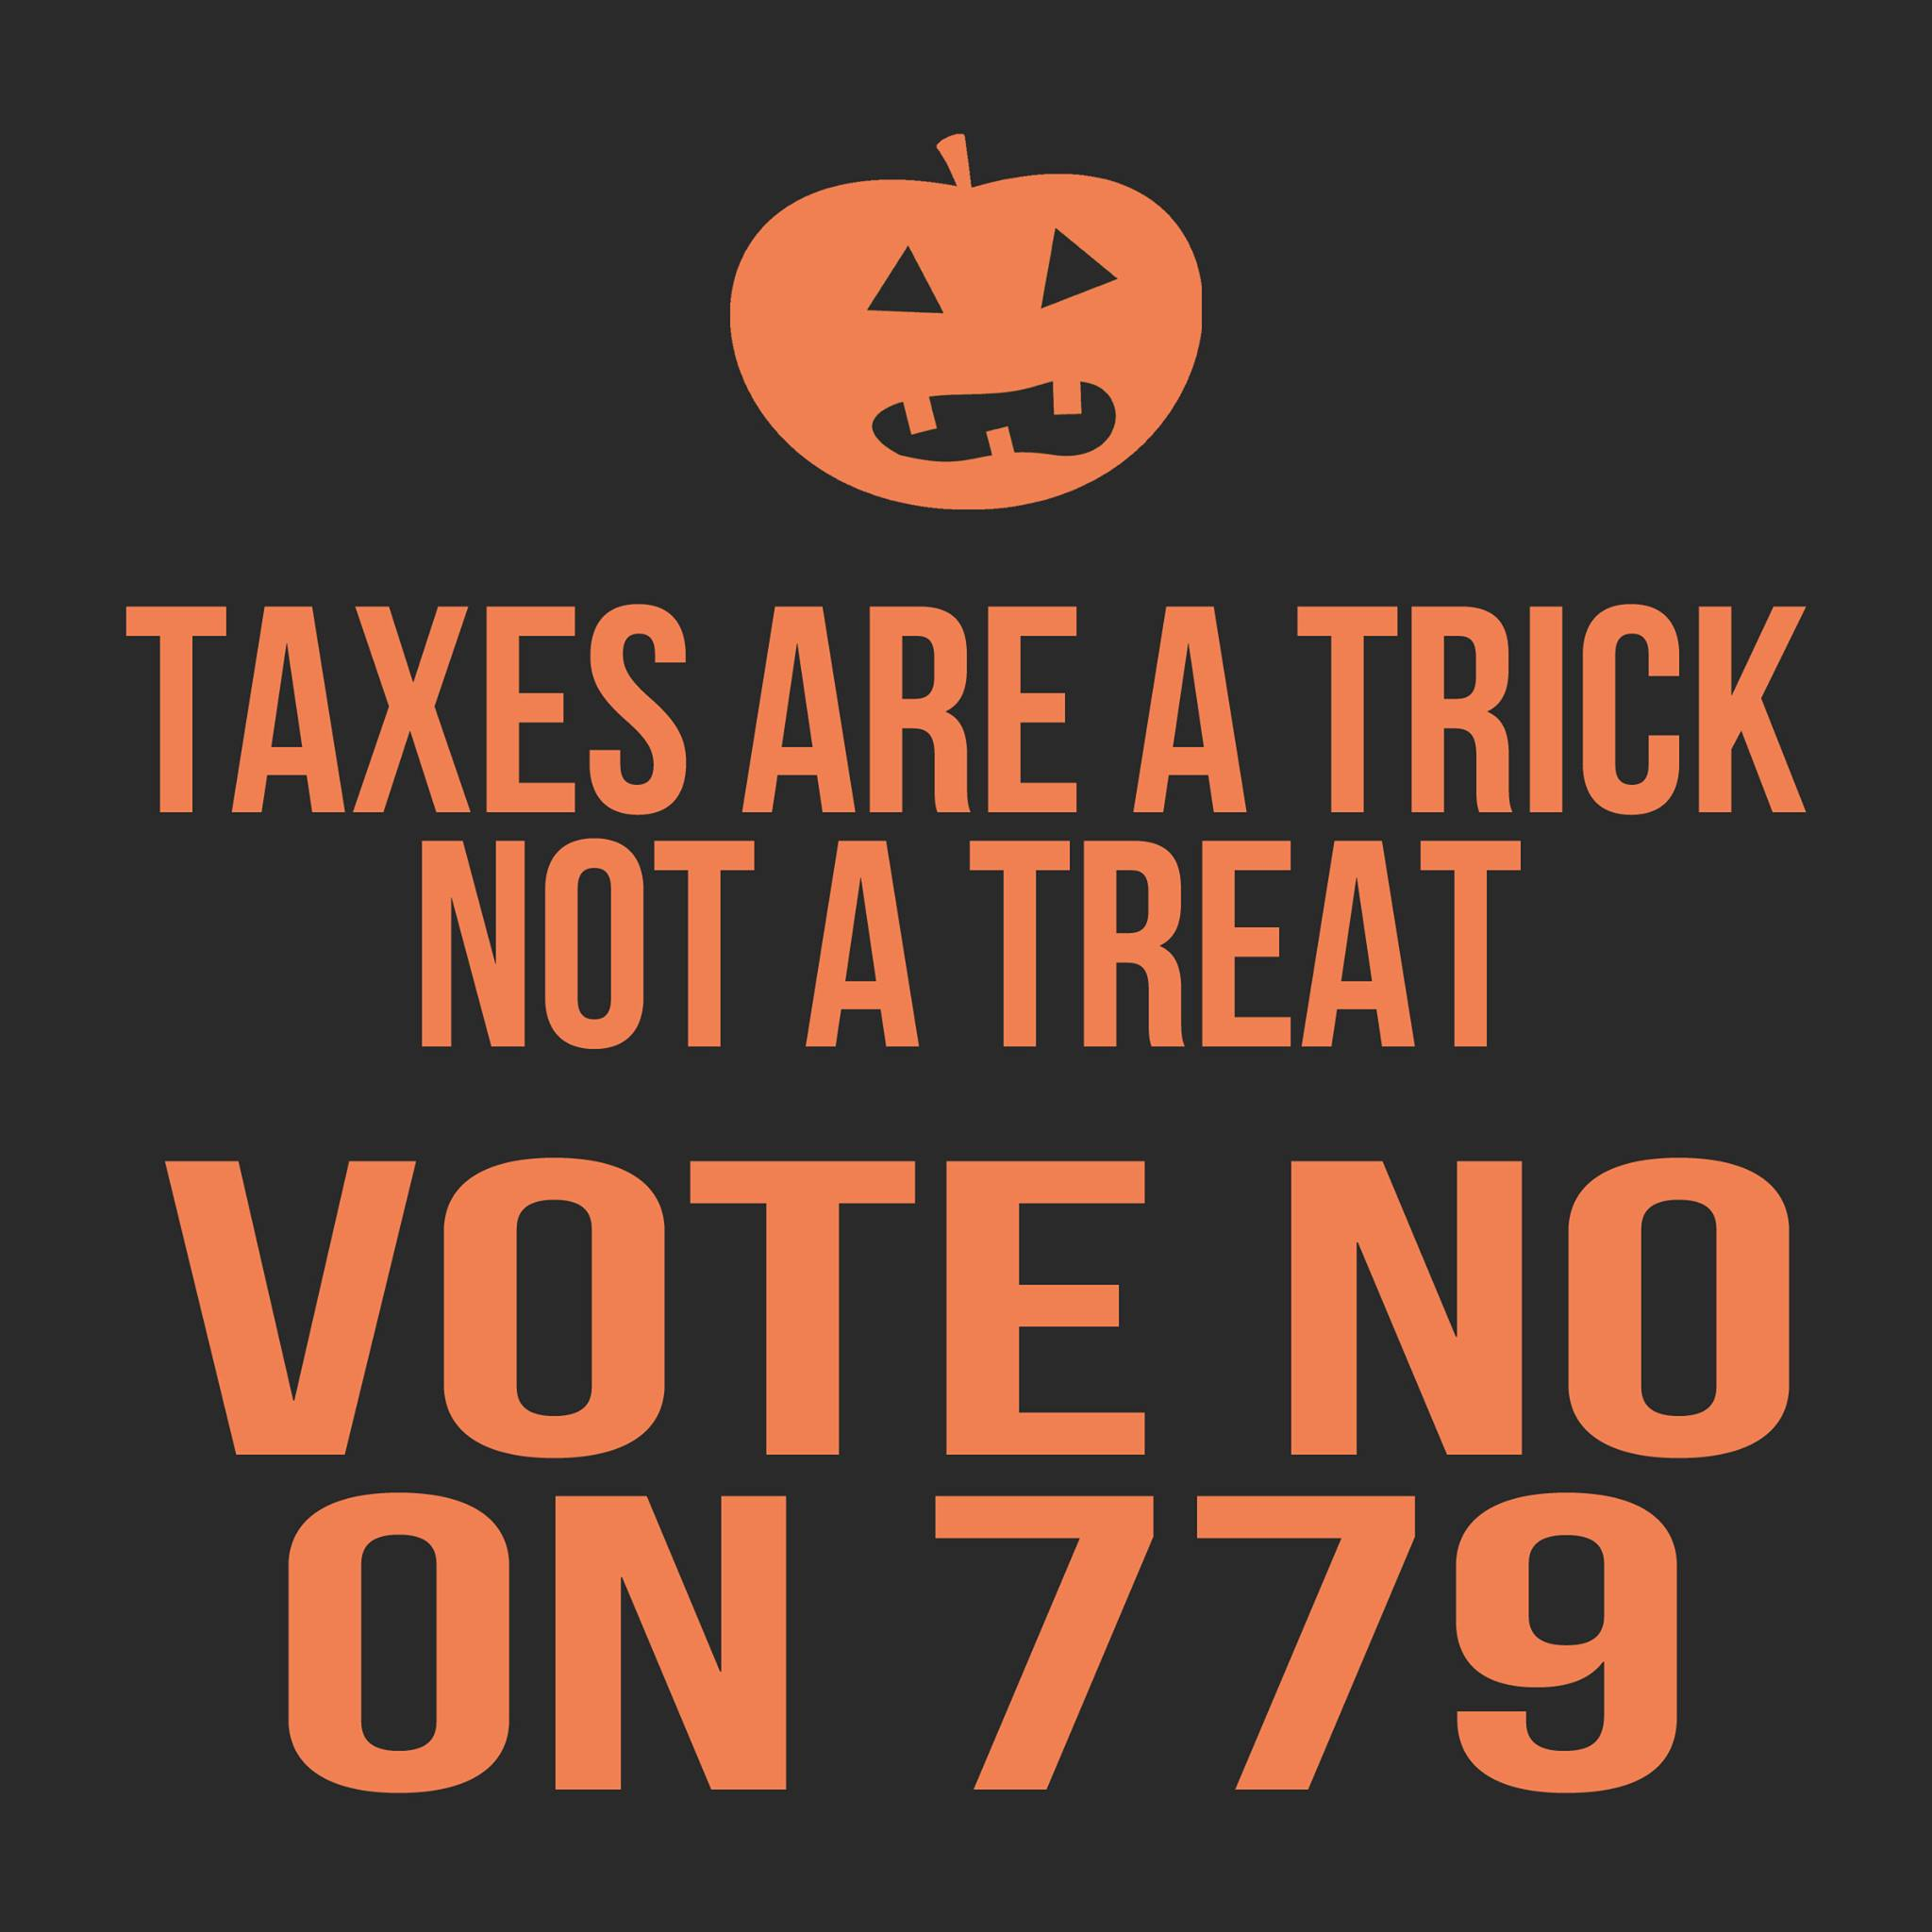 taxes-are-a-trick-not-a-treat-vote-no-on-779